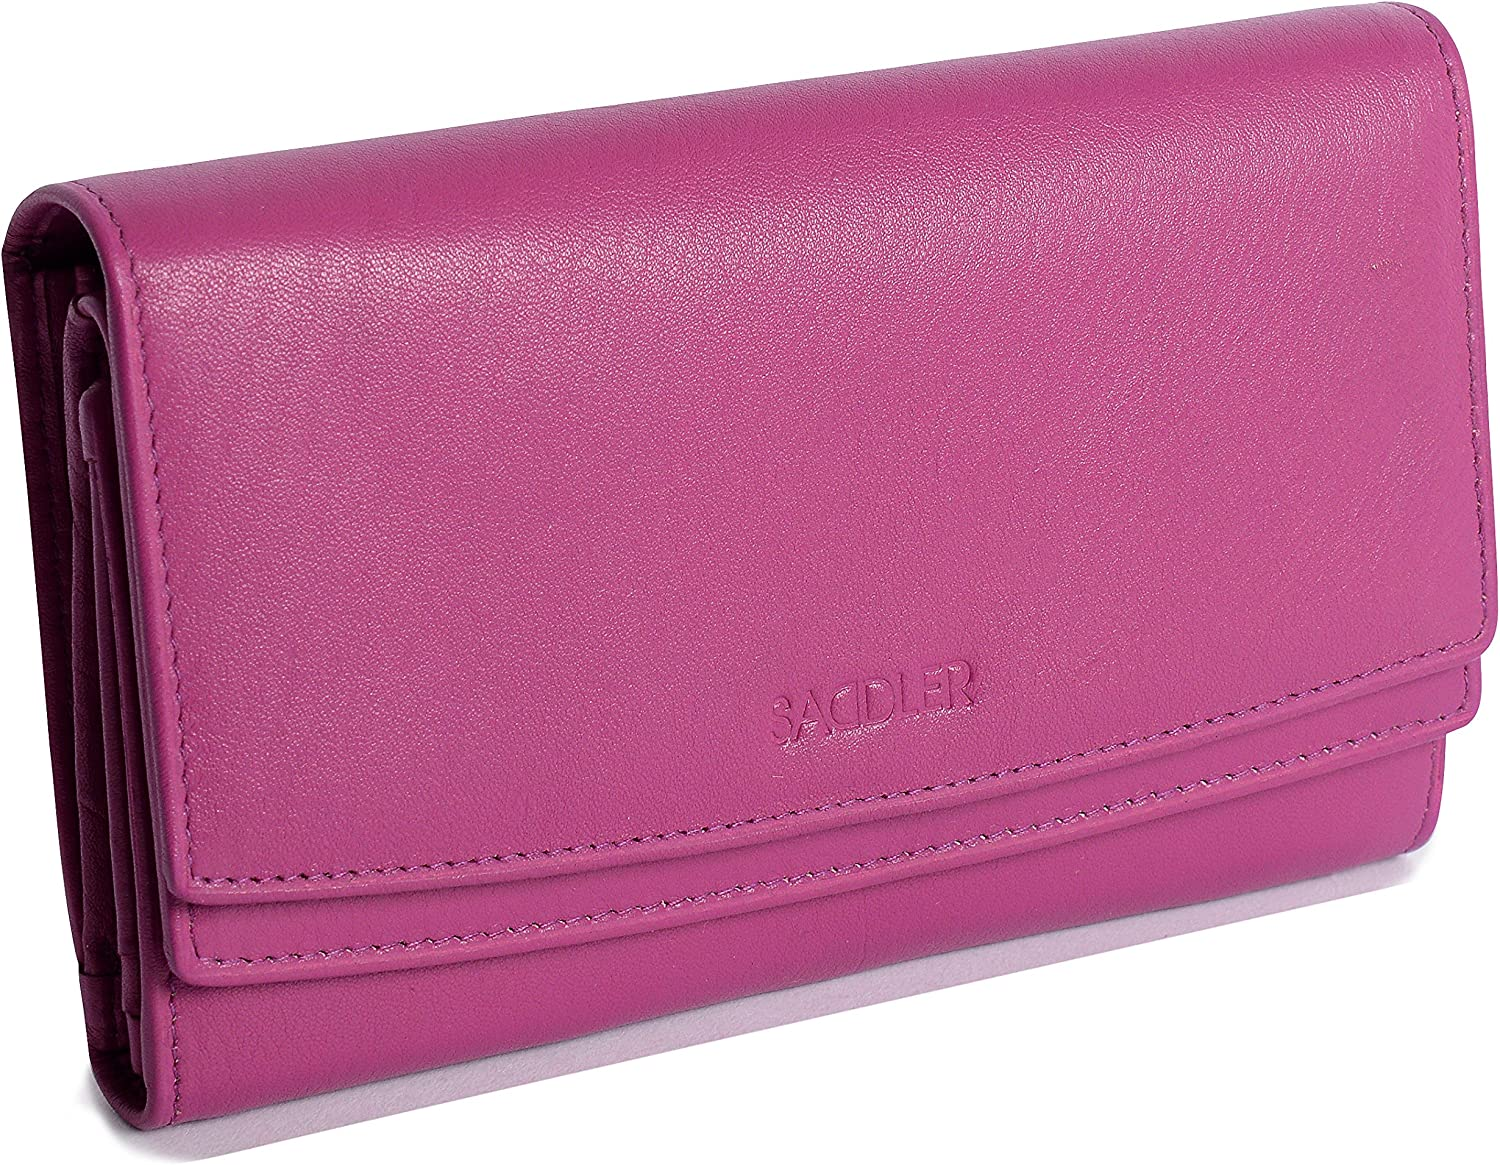 Ladies Designer High Capacity Credit Card Holder with Coin Purses Gift Boxed SADDLER Womens Luxurious Real Leather Large Multi Section Purse Wallet Clutch